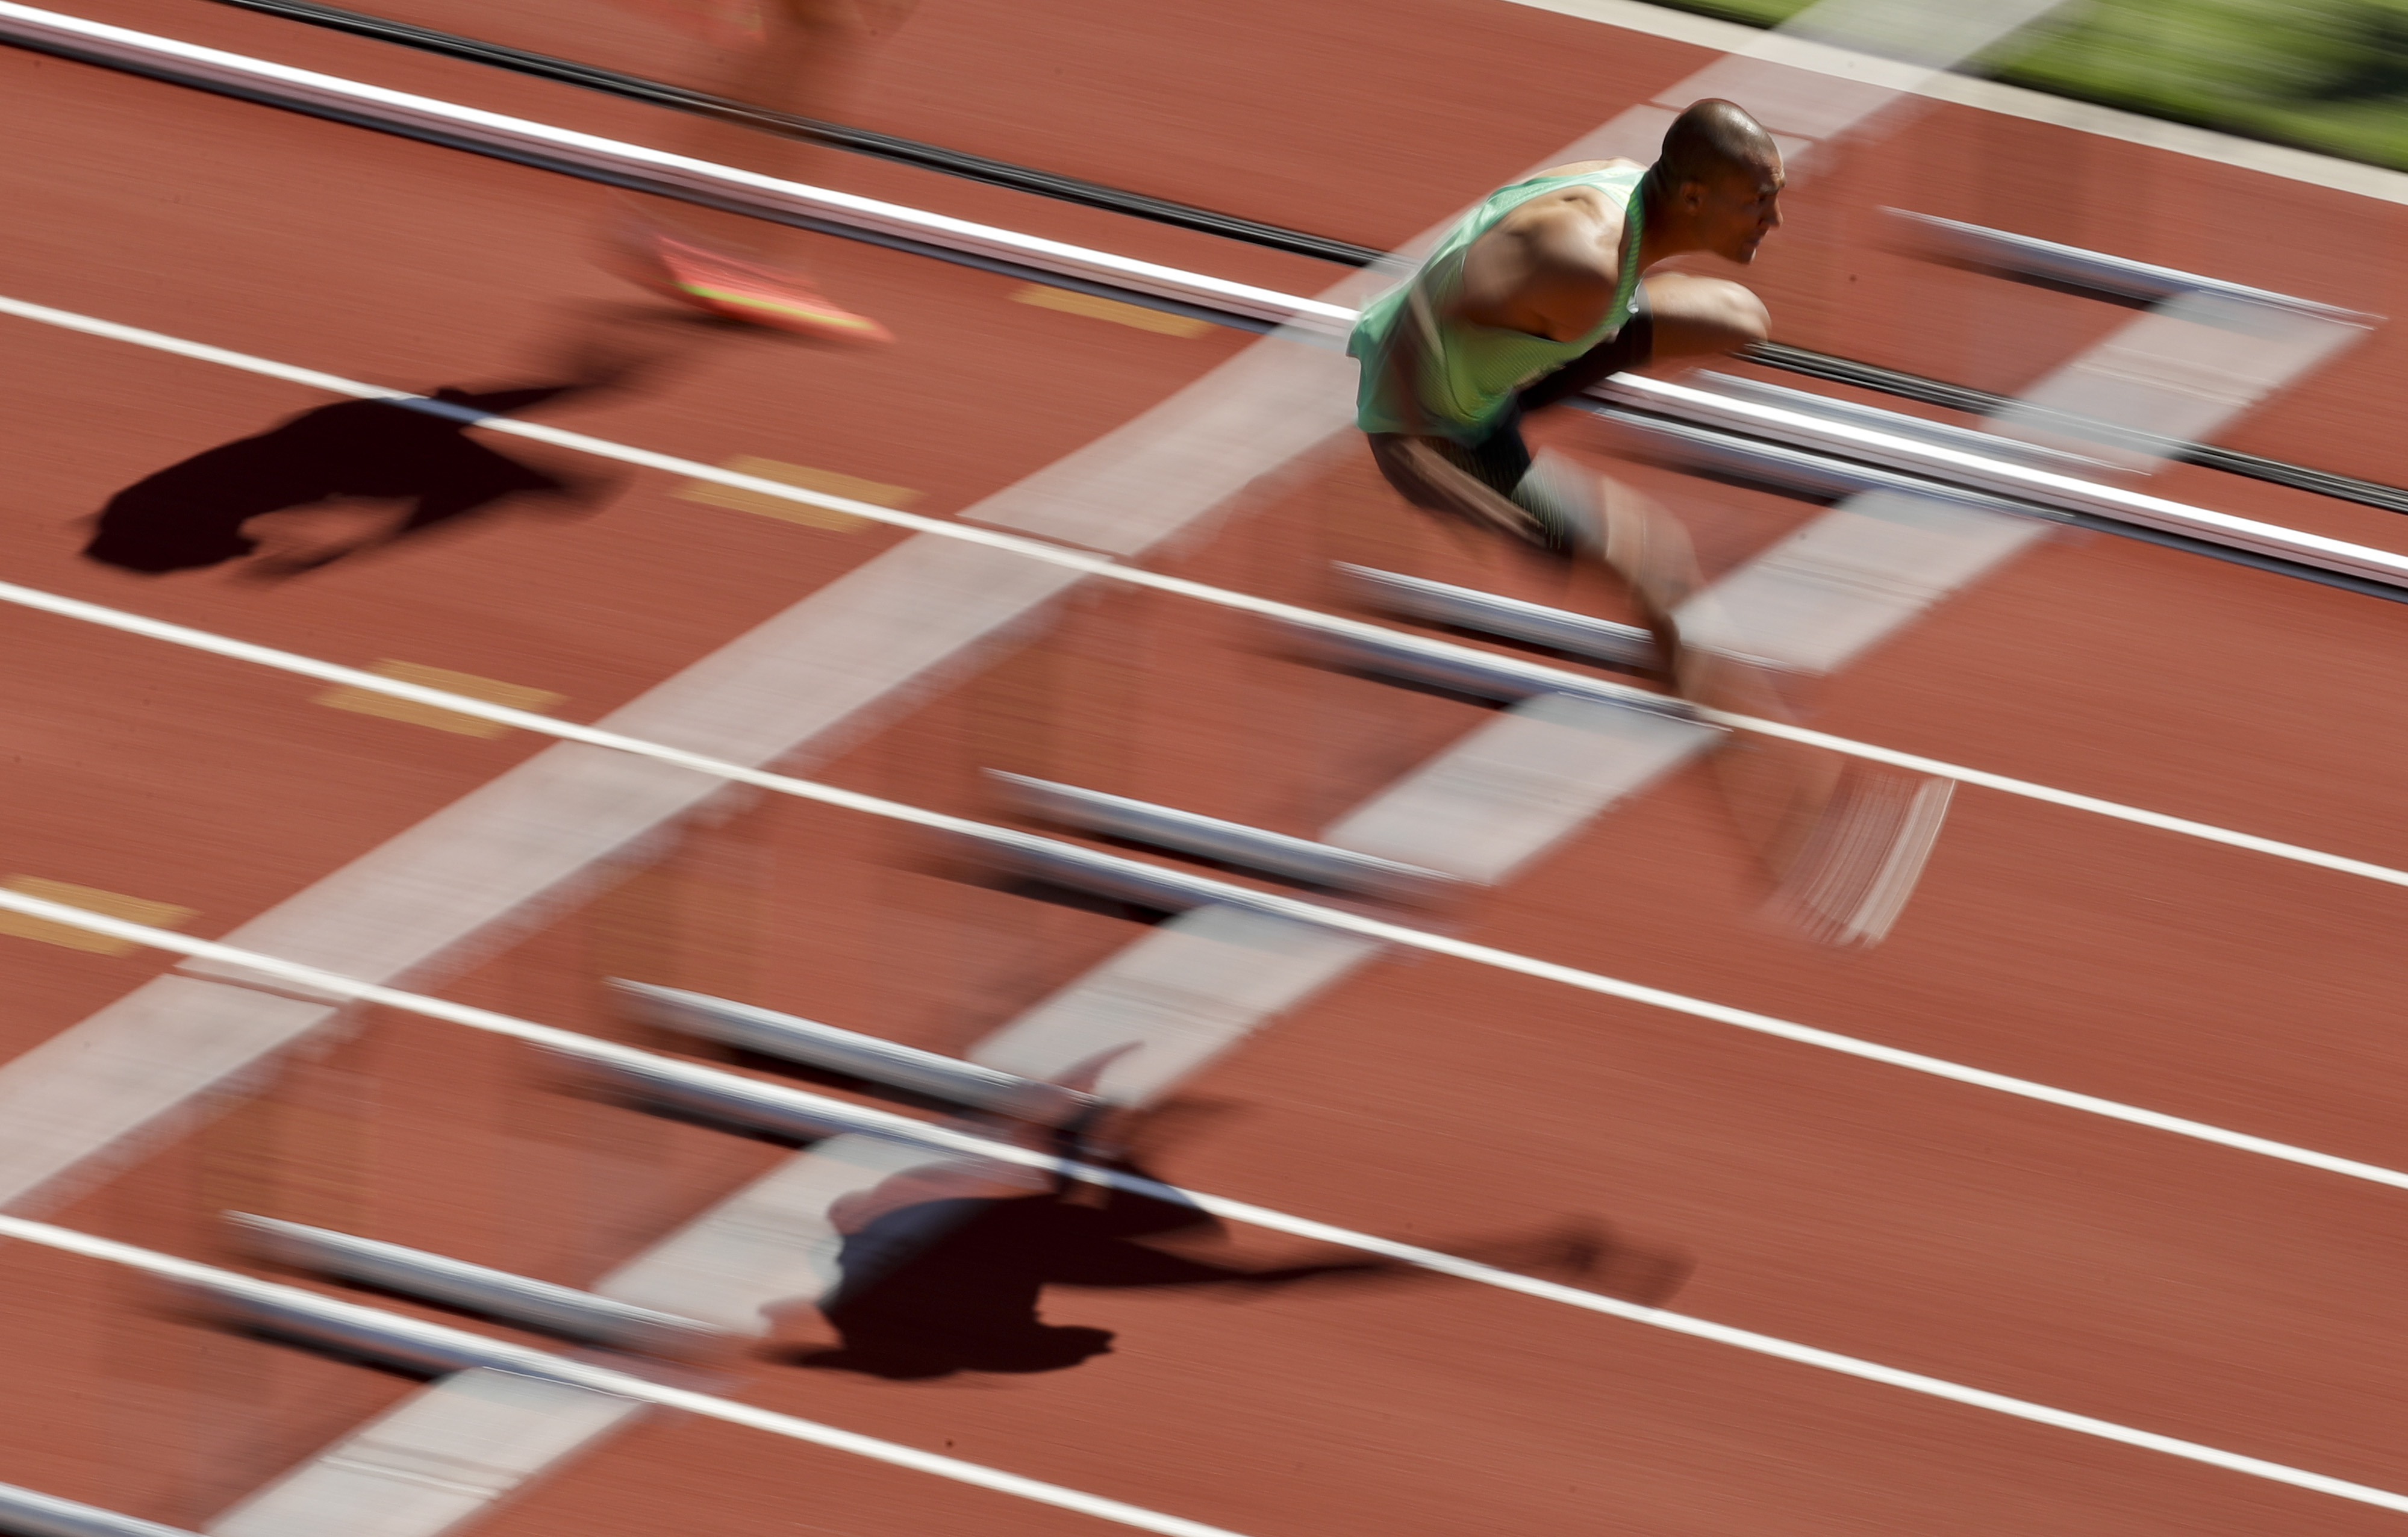 Ashton Eaton competes during the decathlon 110-meter hurdles at the U.S. Olympic Track and Field Trials, Sunday, July 3, 2016, in Eugene Ore. (AP Photo/Charlie Riedel)